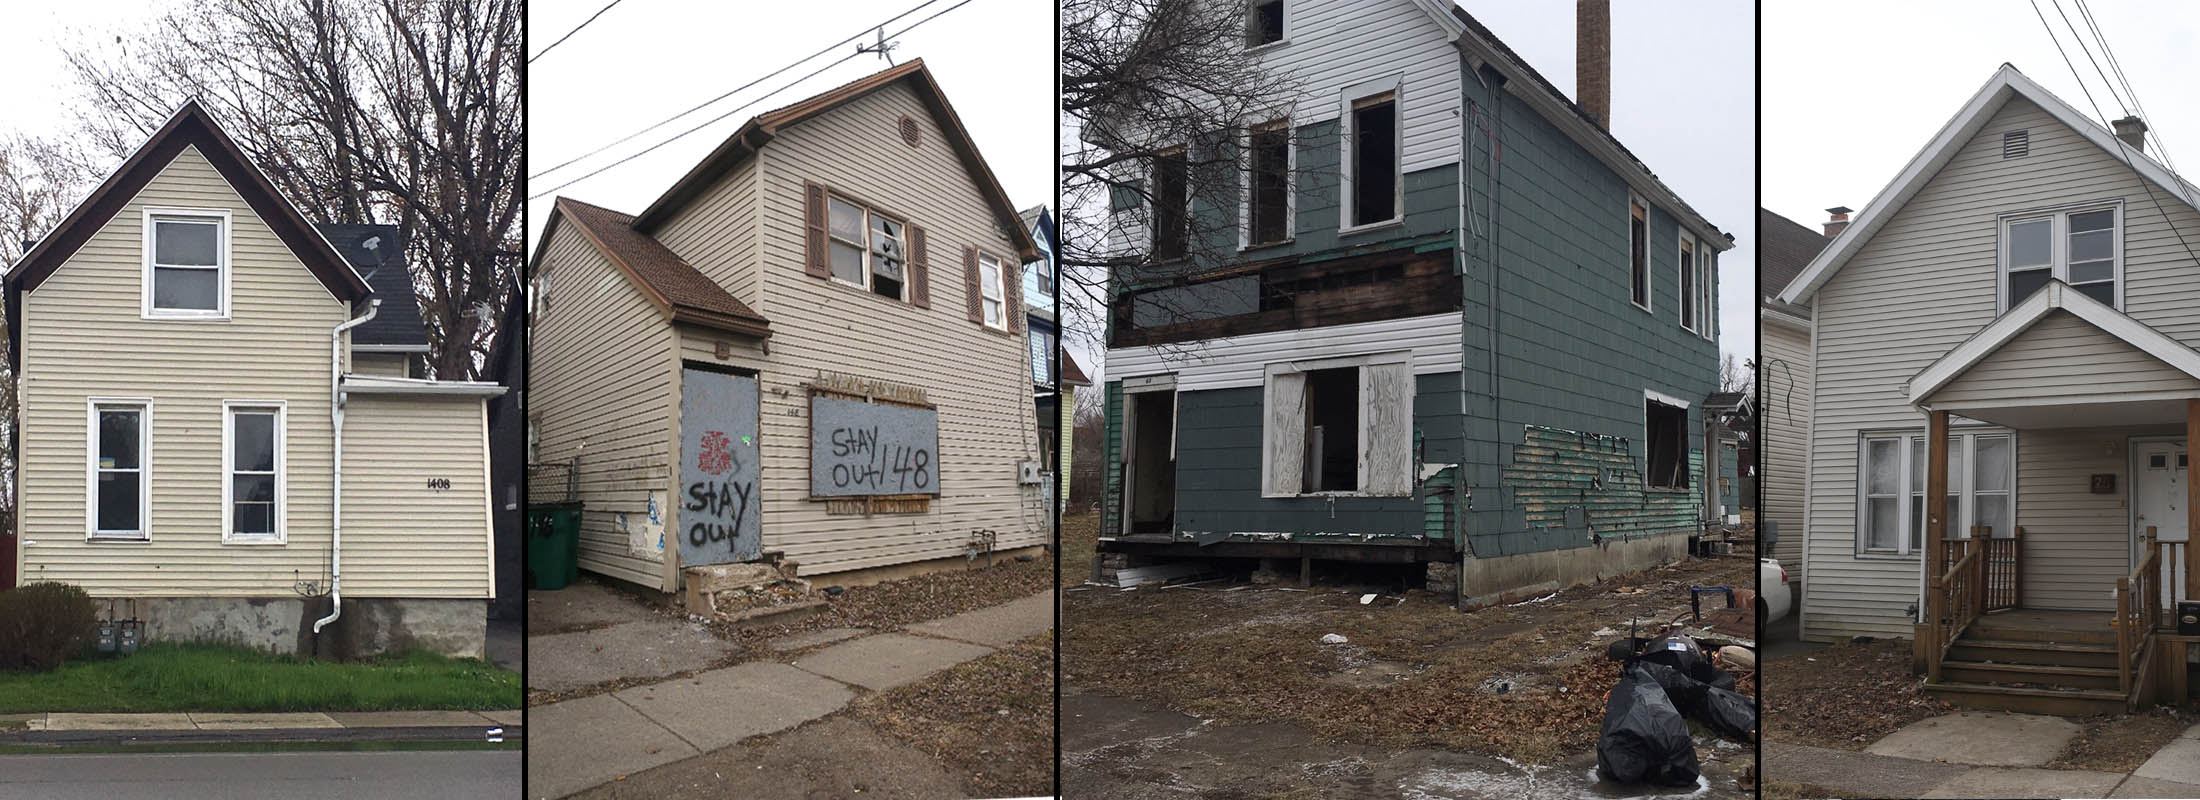 The homes at 1408 South Park, 148 Thompson St., 43 Goembel Ave. and 25 Mesmer Ave.  (Buffalo News photos)